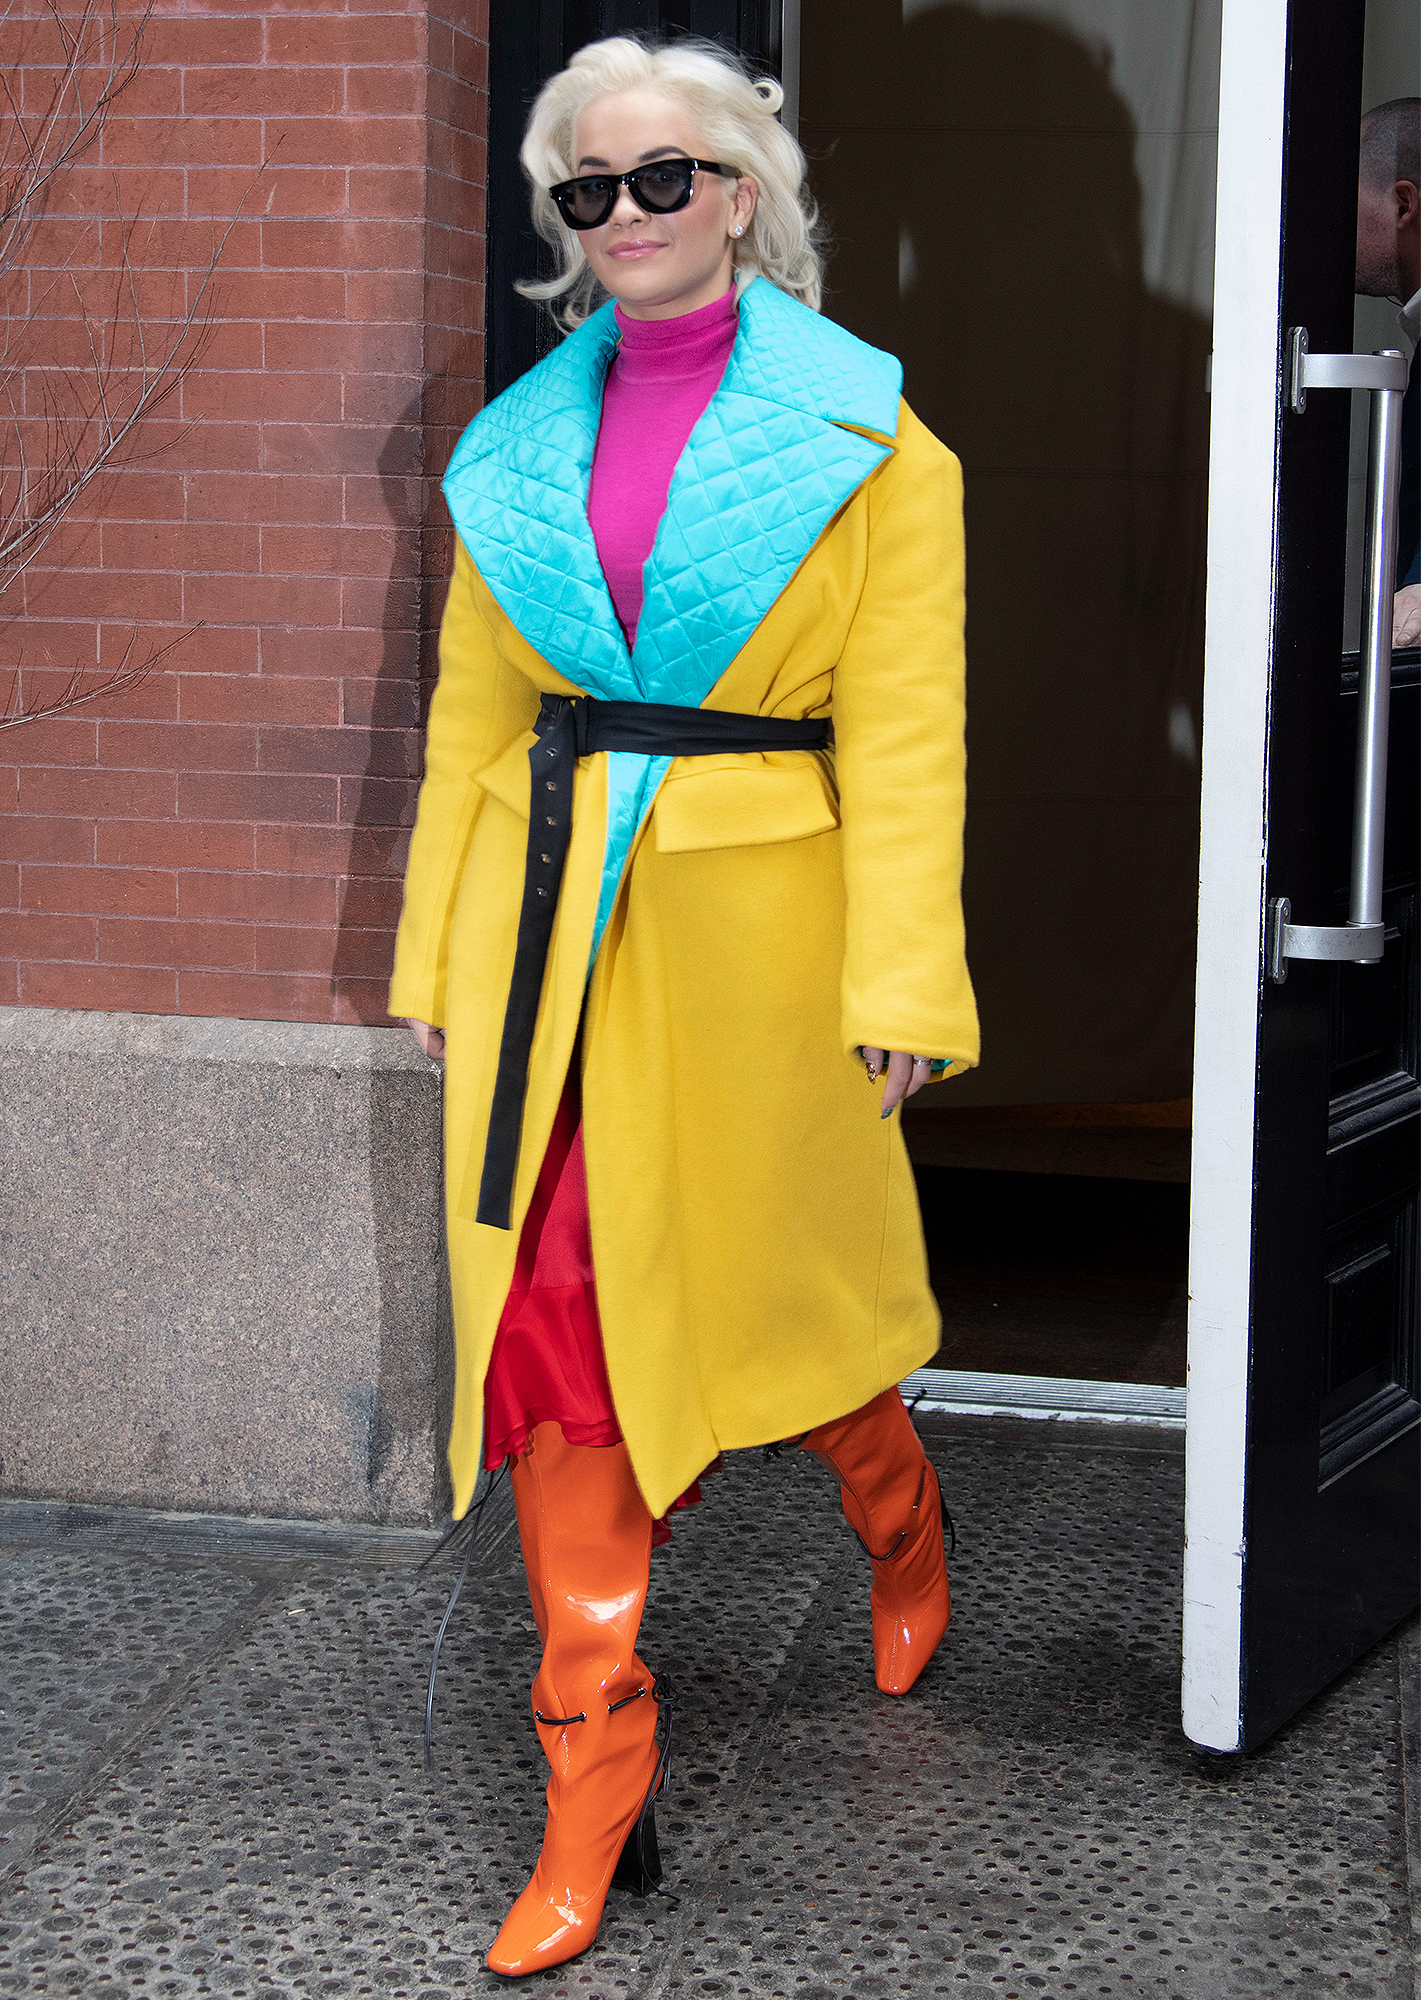 Rita Ora puts on a colorful display as she steps out to the spa in Tribeca, New York.